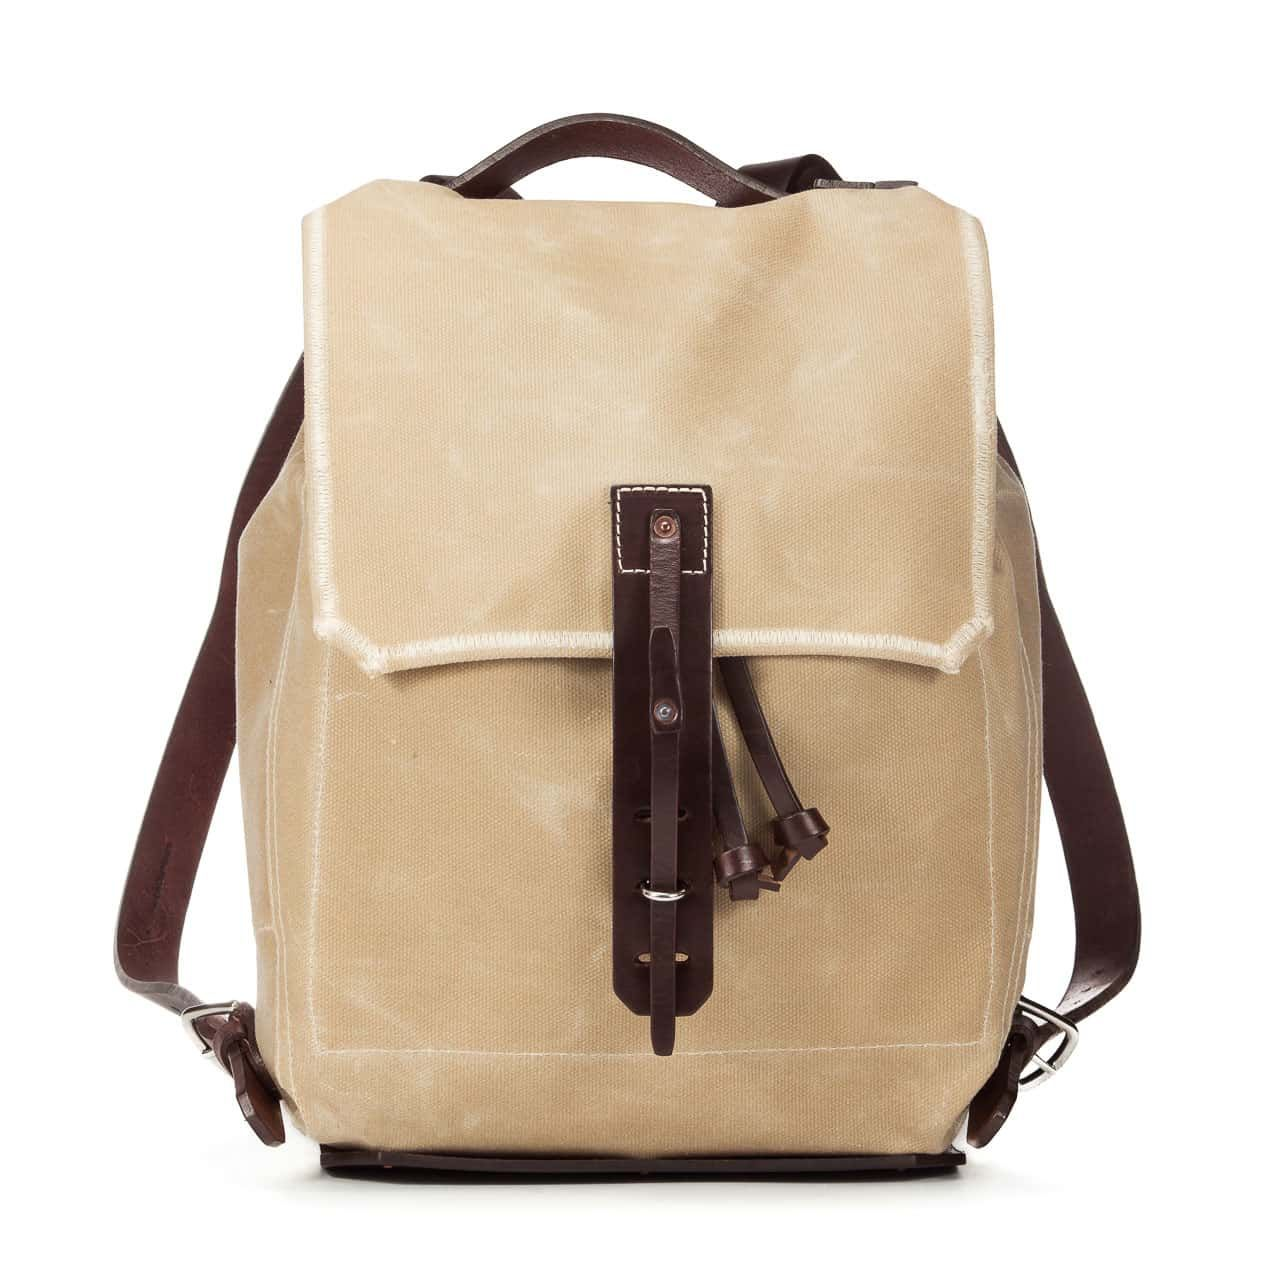 Simple Backpack in Color Sand Front